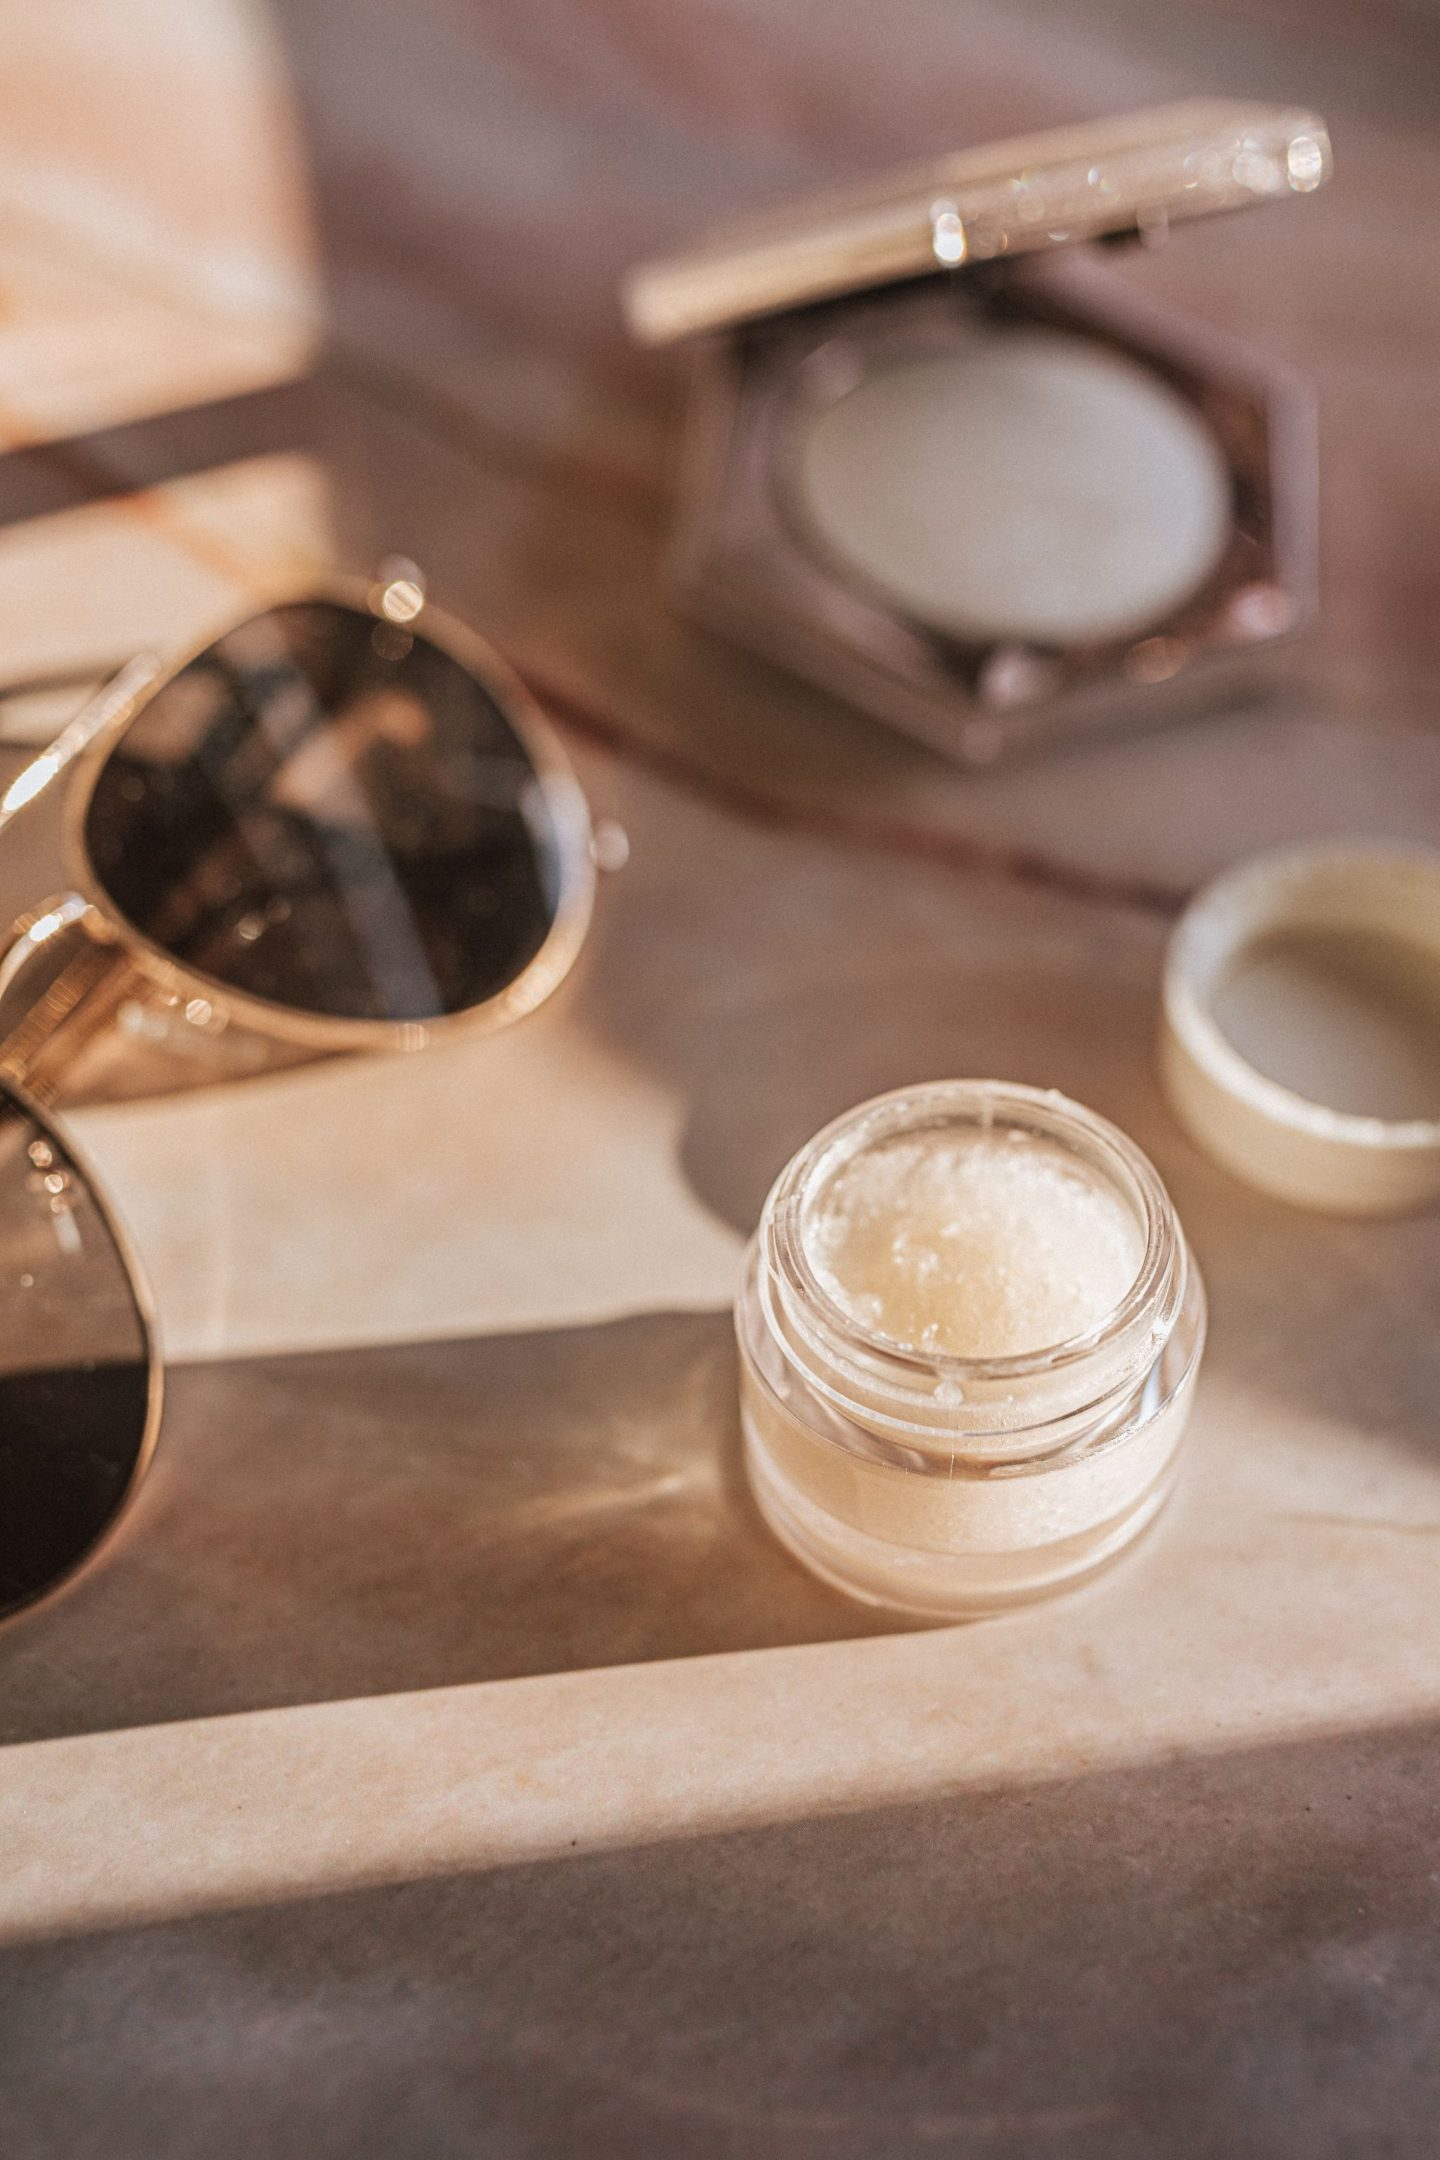 EVERYTHING YOU NEED TO KNOW ABOUT CBD OIL IN BEAUTY PRODUCTS